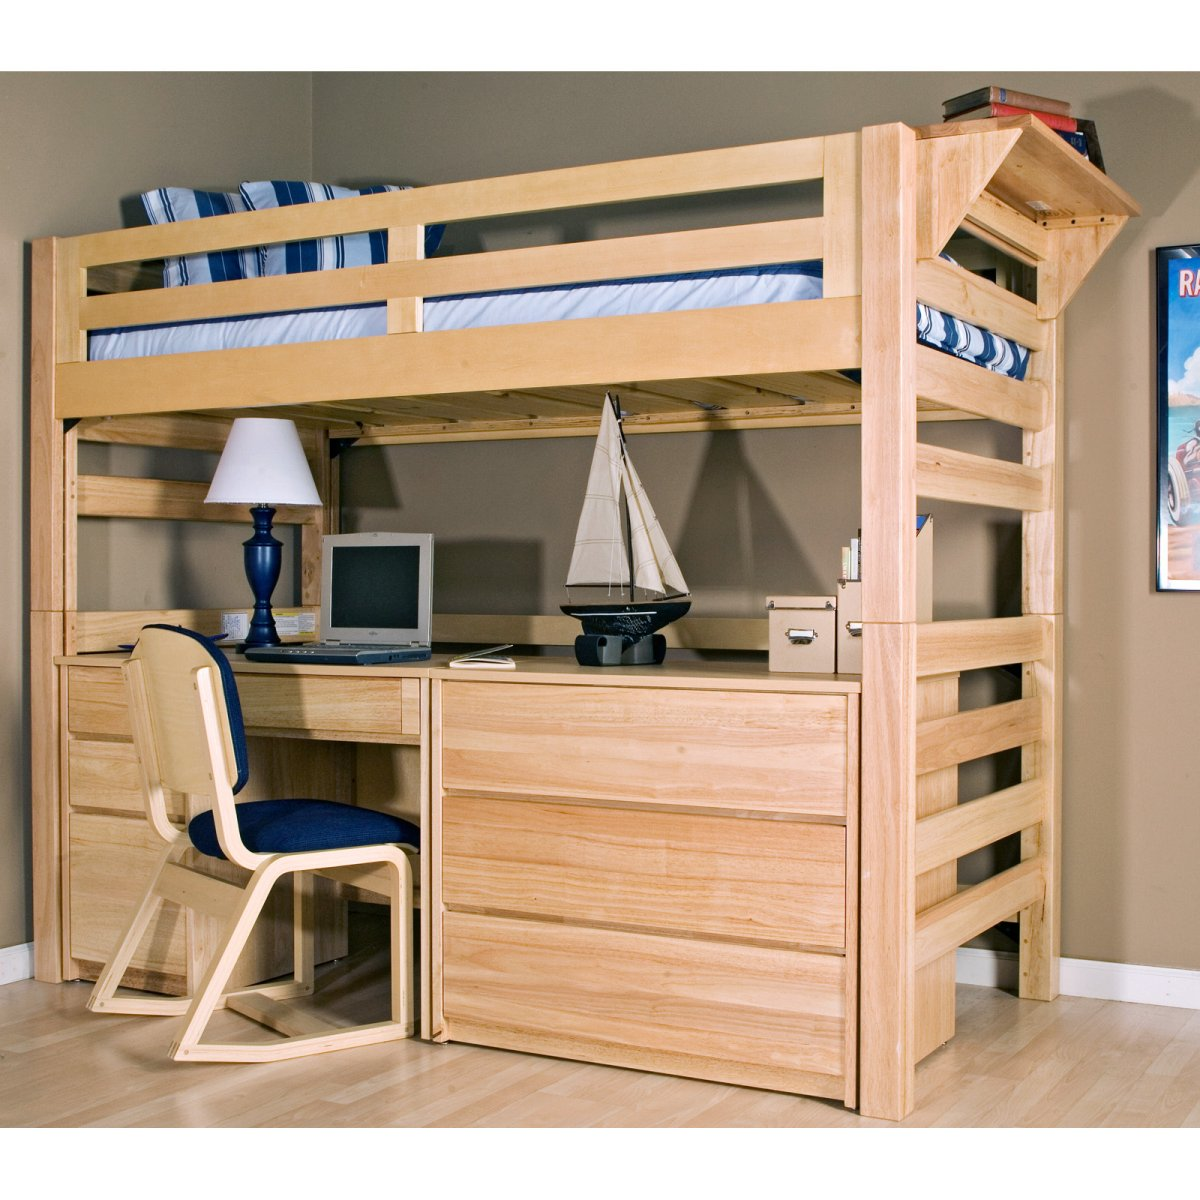 Loft bed with desk designs features inoutinterior